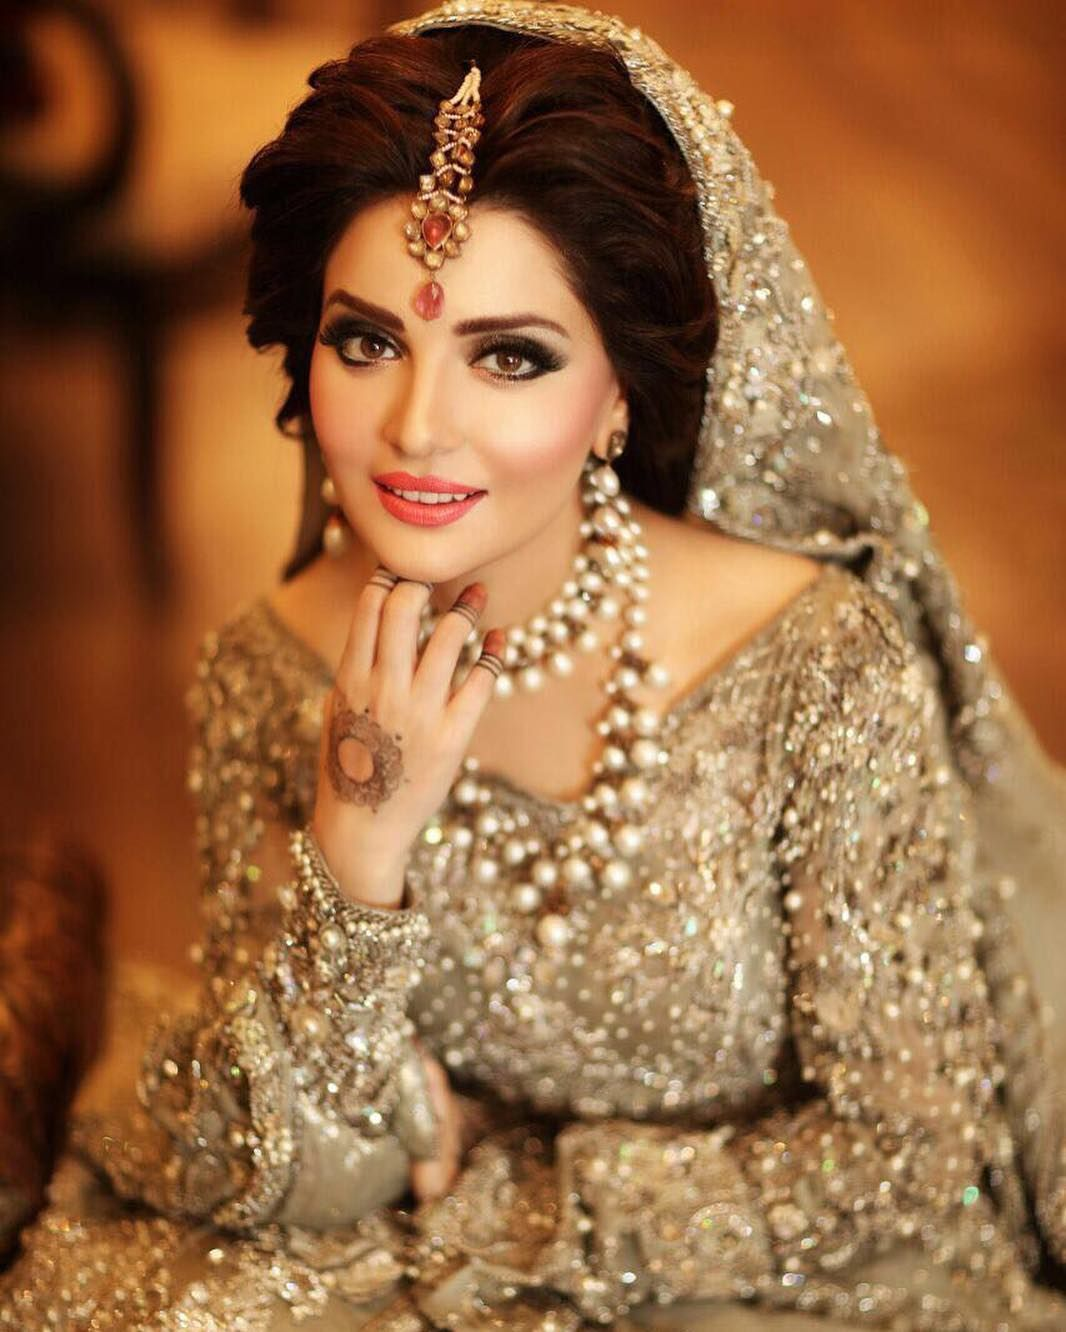 Hairstyles Pakistani Waleema: 5 Best Bridal Beauty Salons In Karachi